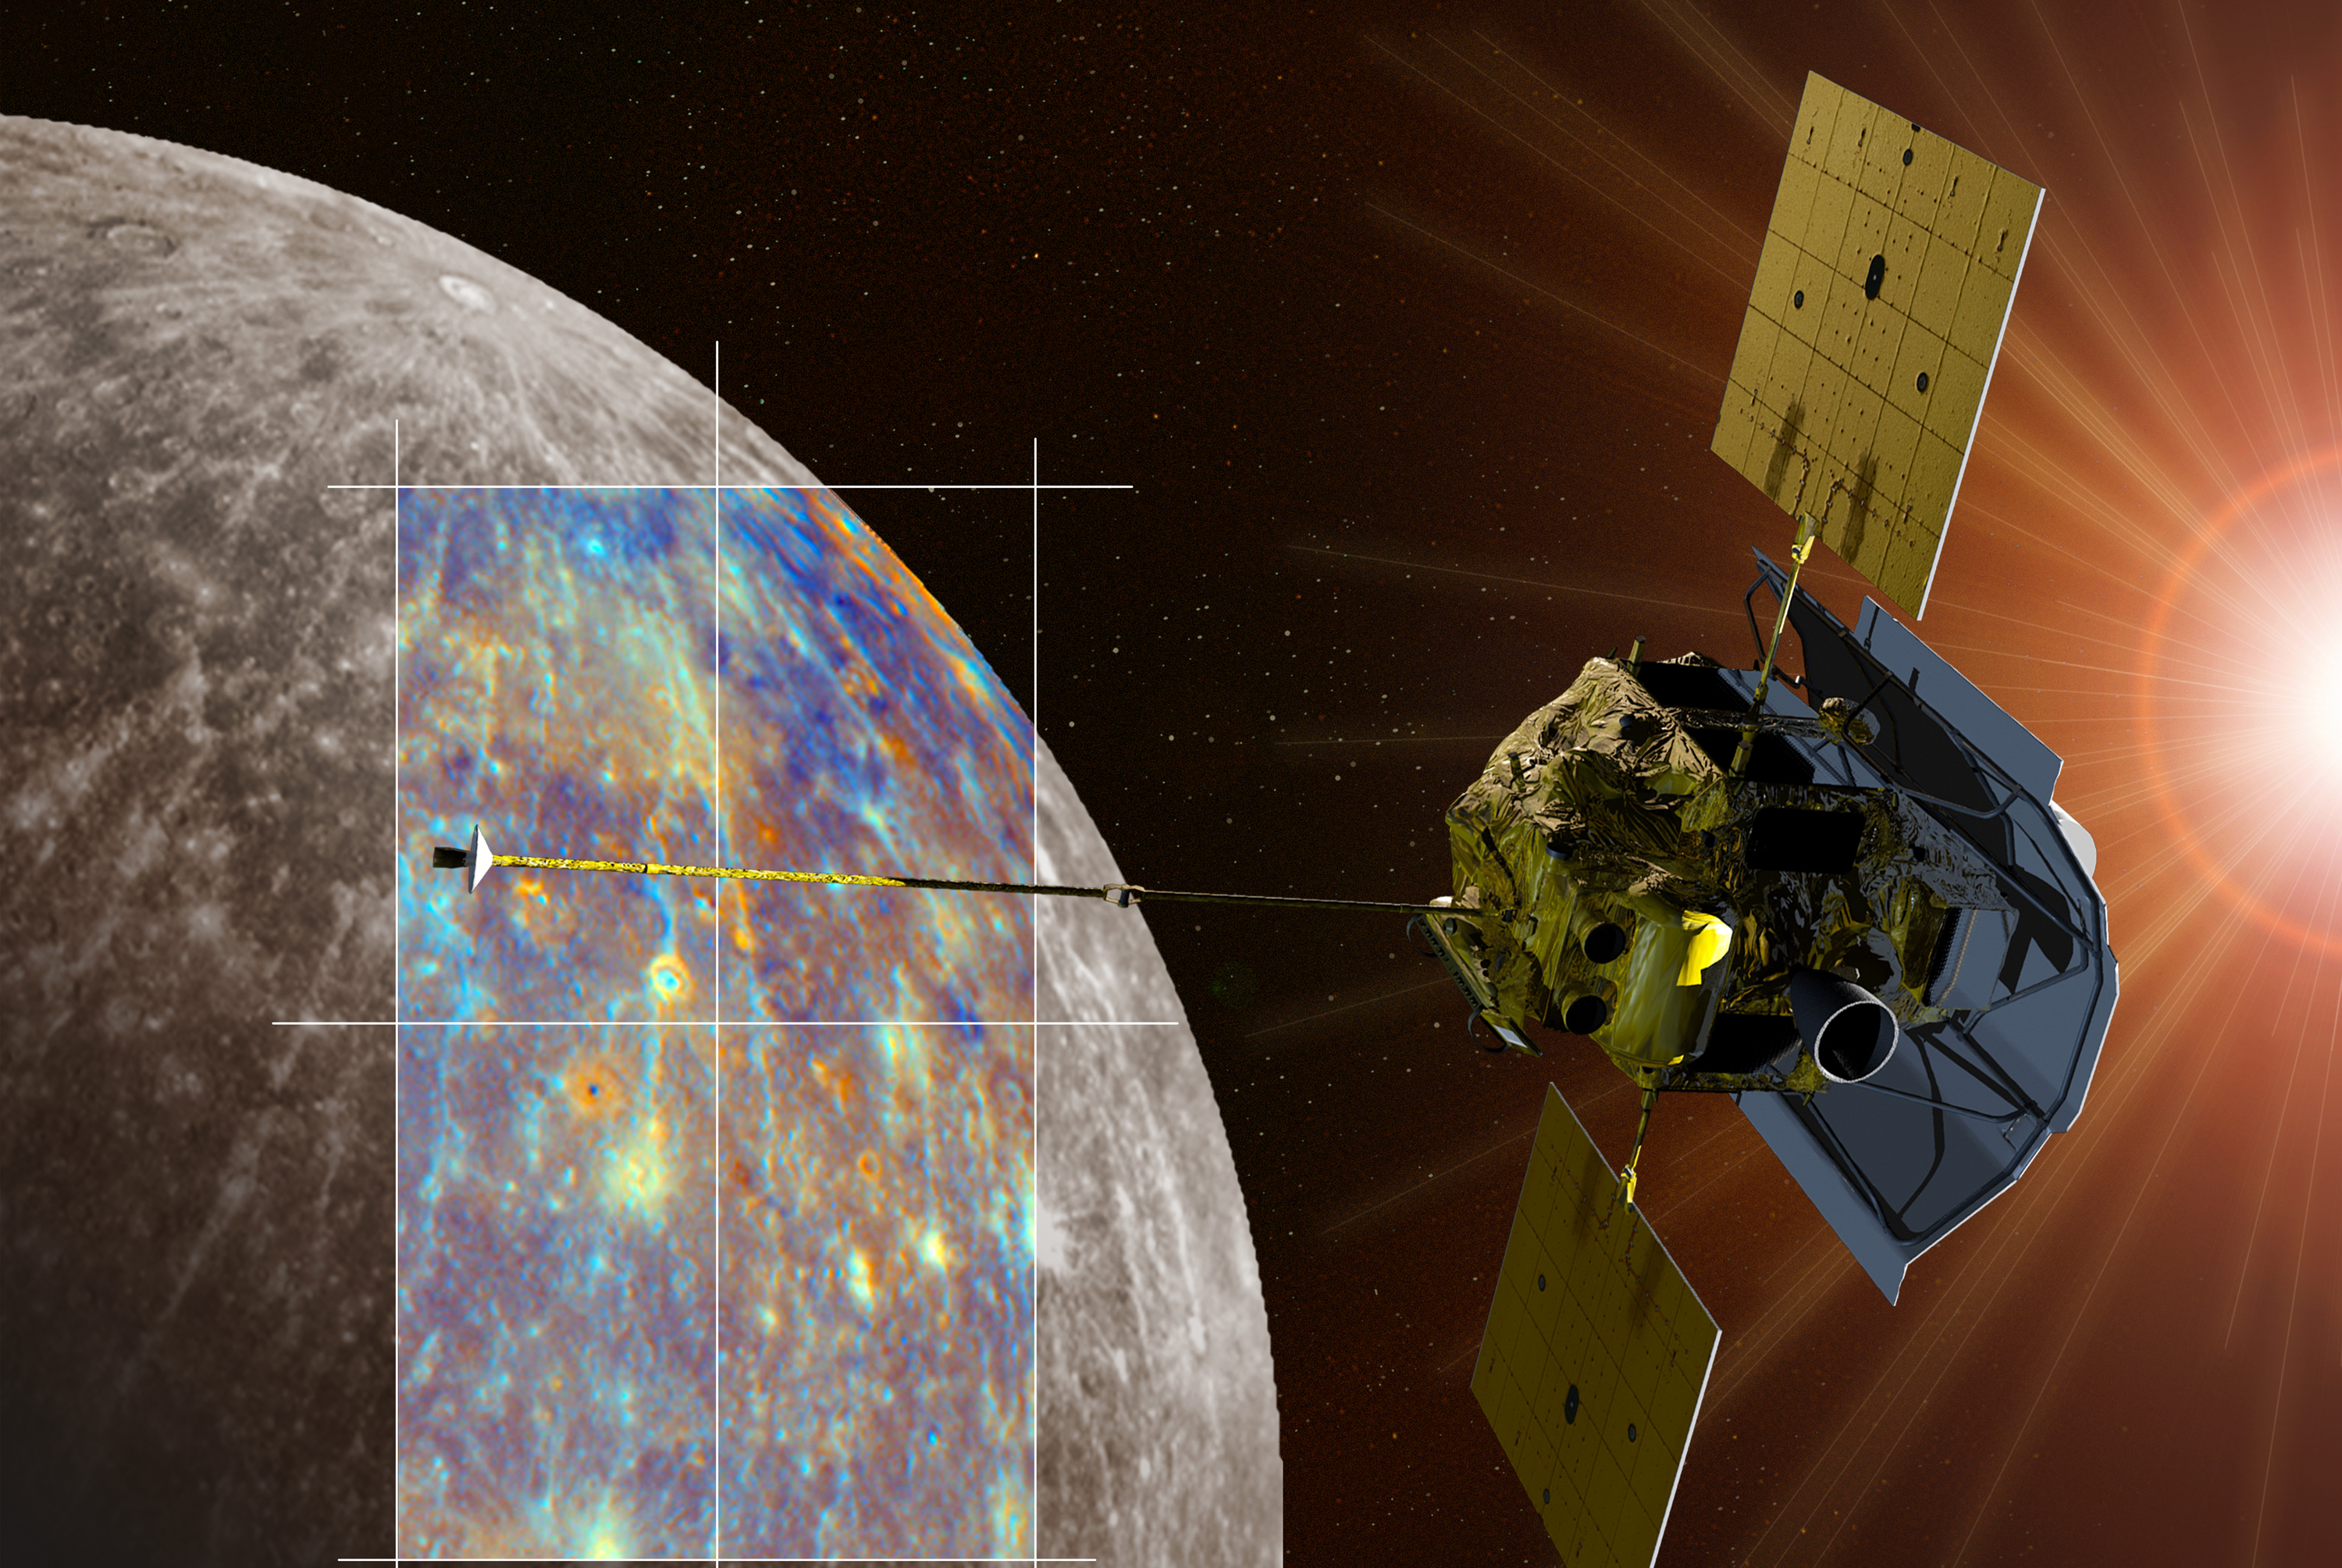 messenger spacecraft to mercury 2009 picture - HD 3000×2009